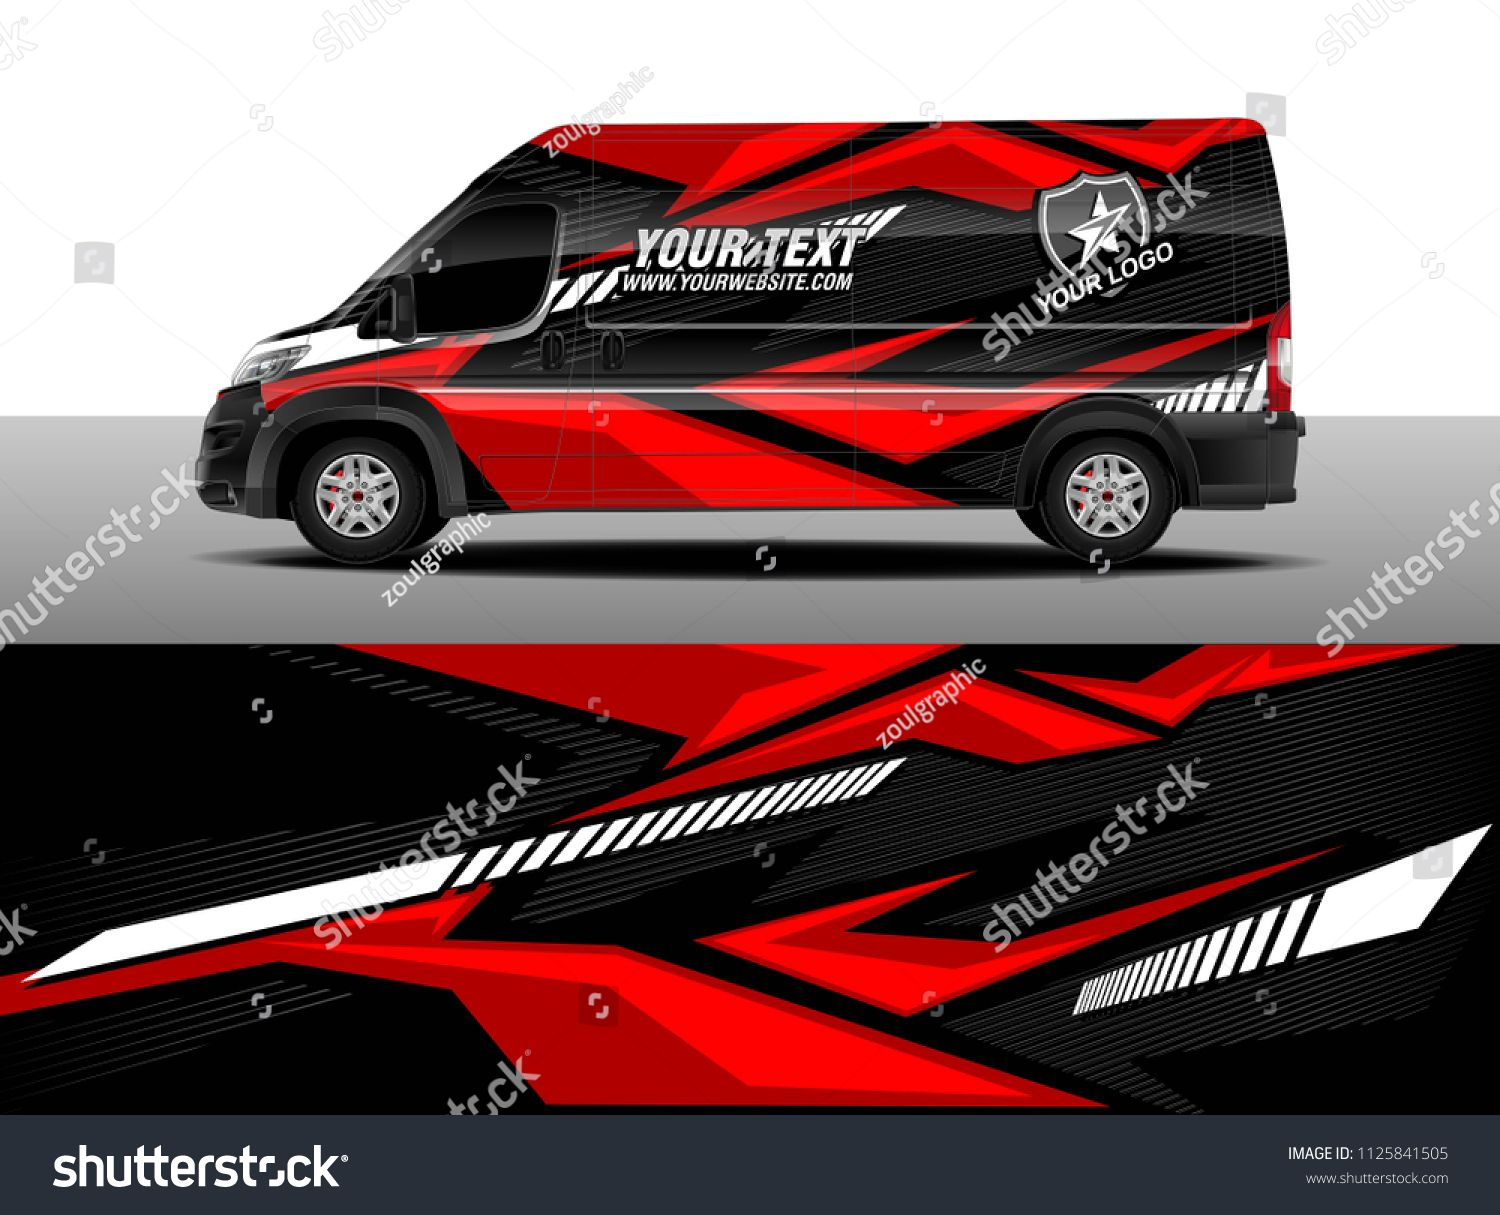 Cargo Van Decal Truck And Car Wrap Vector Graphic Abstract Stripe Designs For Wrap Branding Vehicle Sponsored Ad Car Wrap Car Sticker Design Cargo Van [ 1215 x 1500 Pixel ]